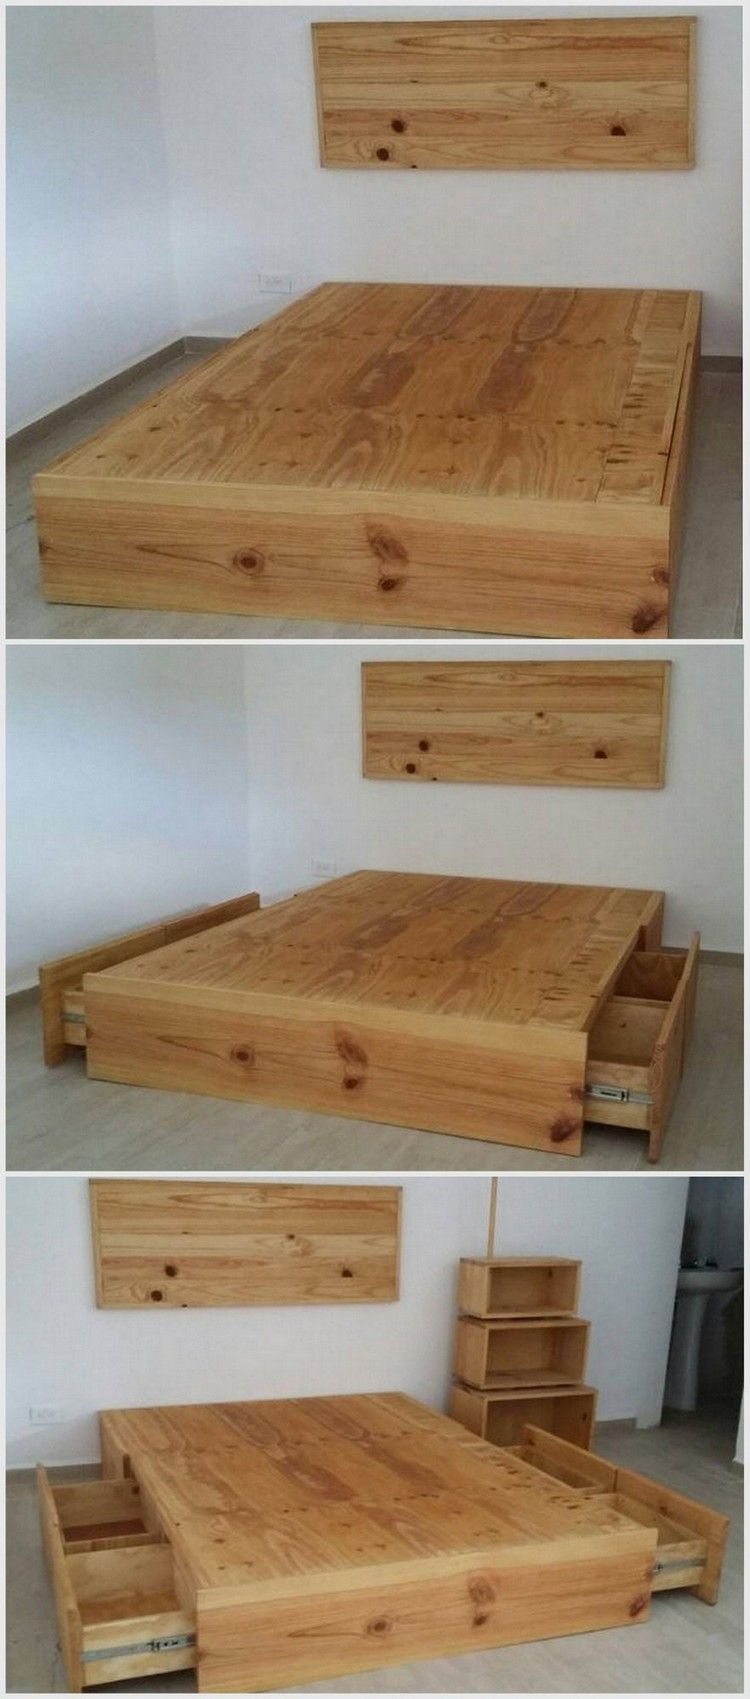 Pallet Bed with Storage | ideas de muebles | Pinterest | Diy palette ...